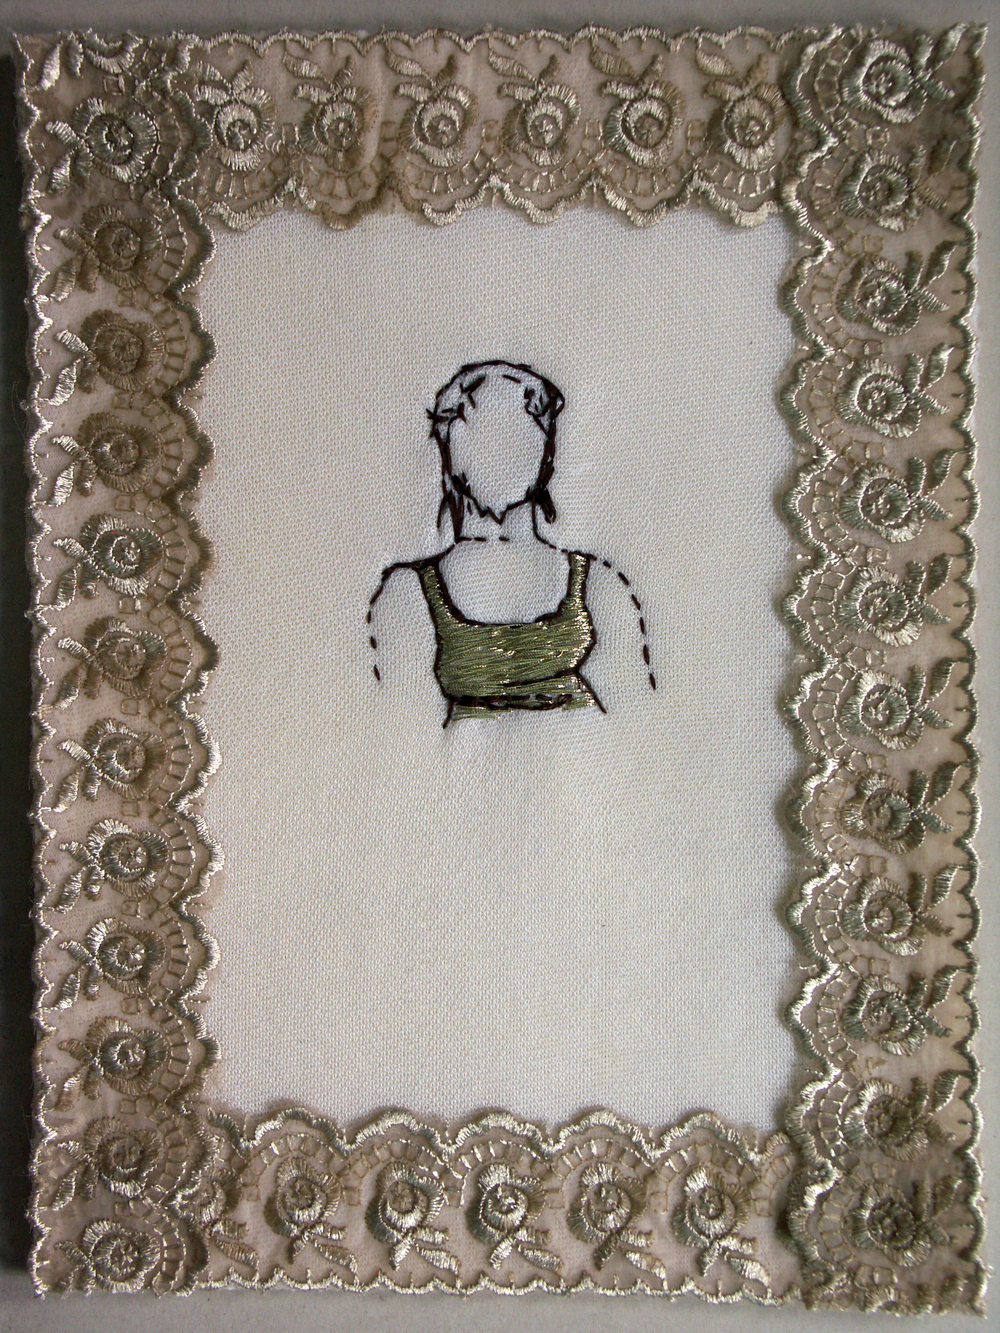 Self portrait | Hand sewn on Fabric| 30x40cm